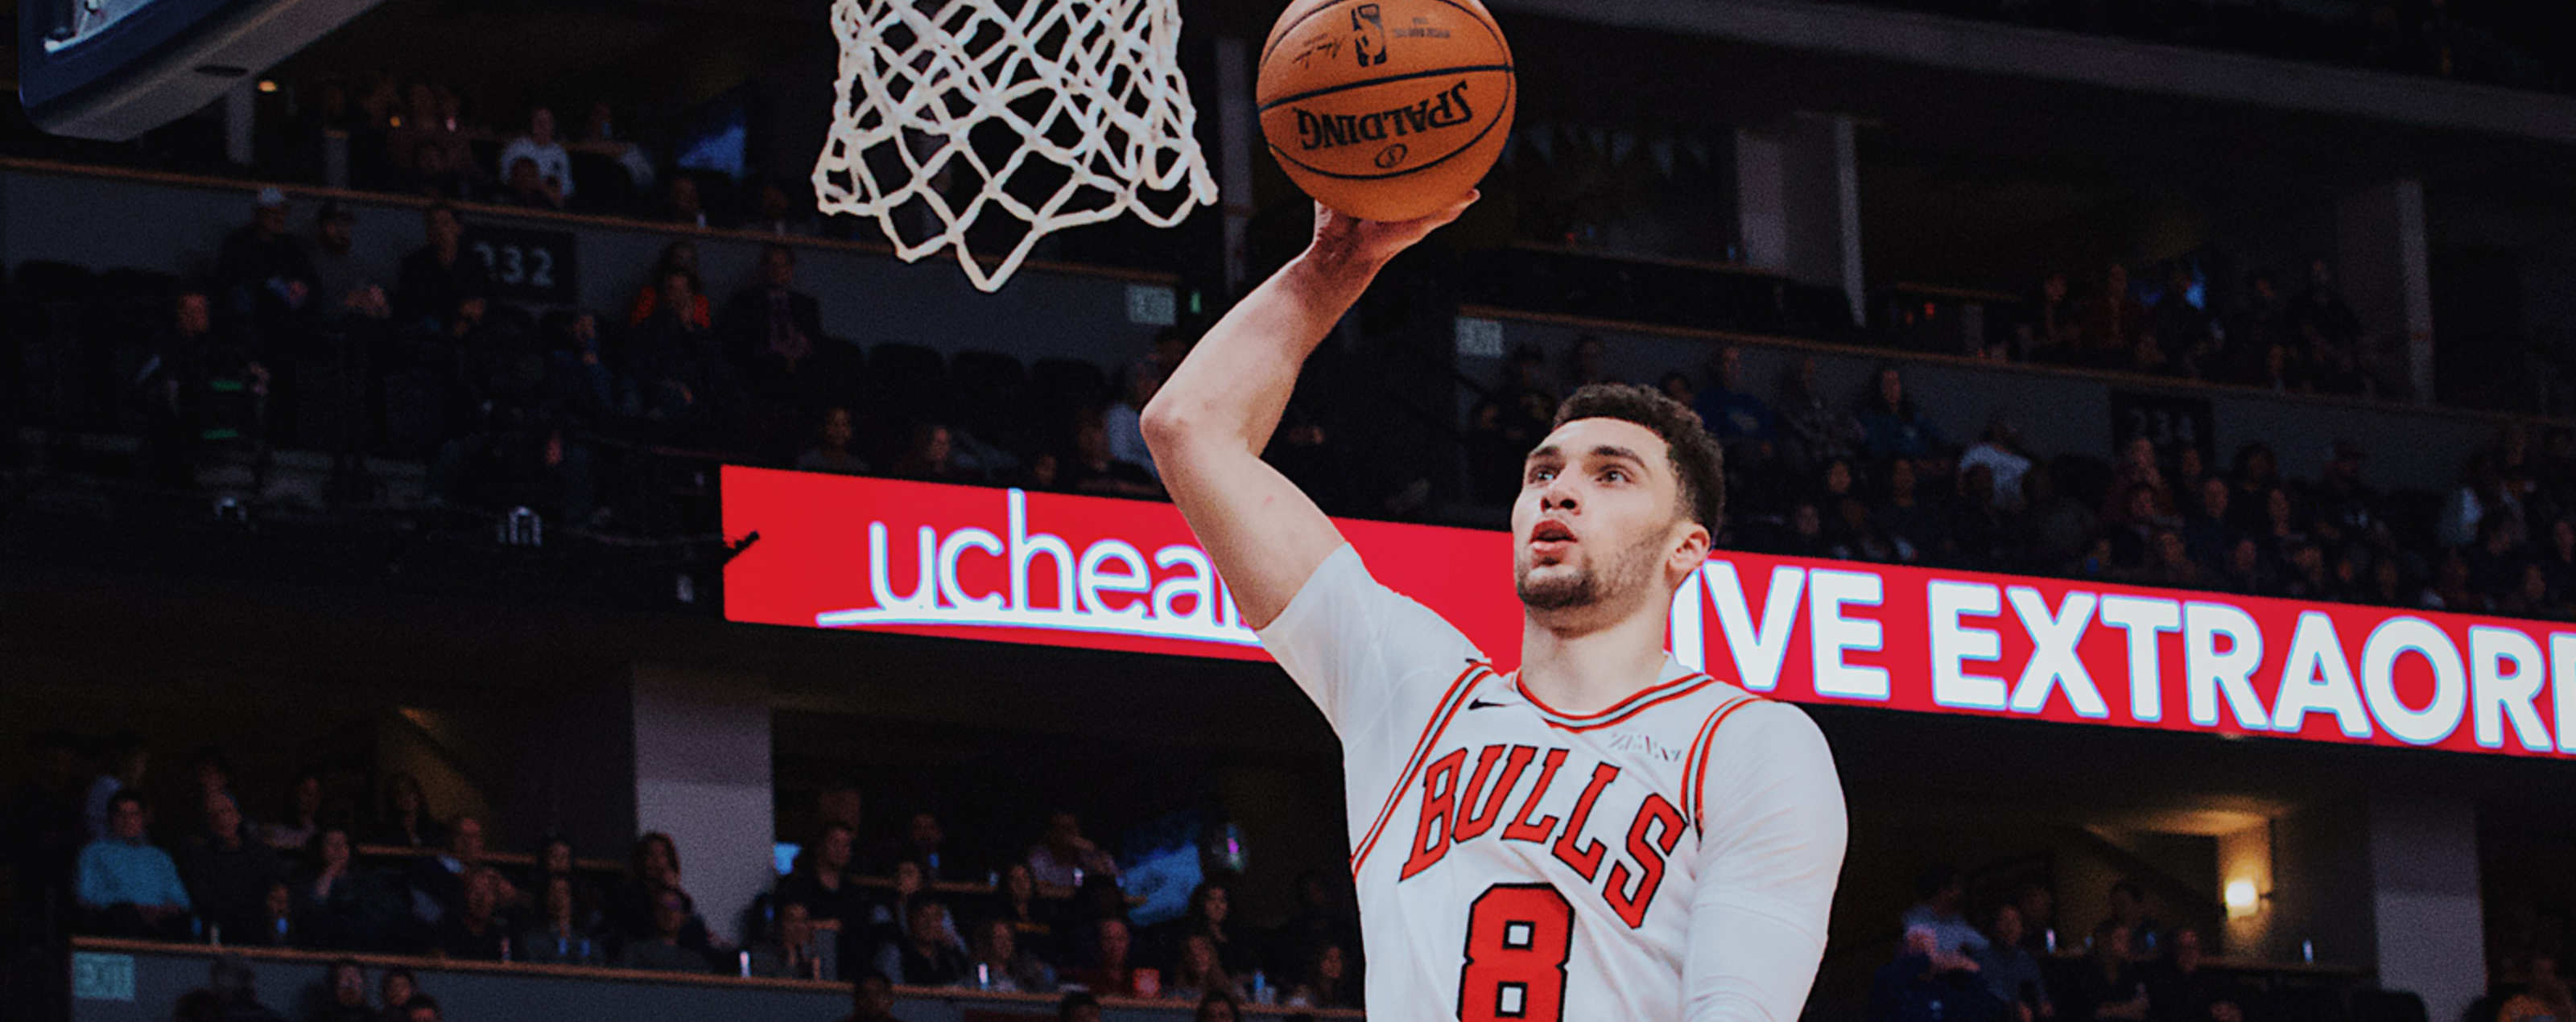 91b83f55623 Zach LaVine of the Chicago Bulls goes for the dunk against the Denver  Nuggets.